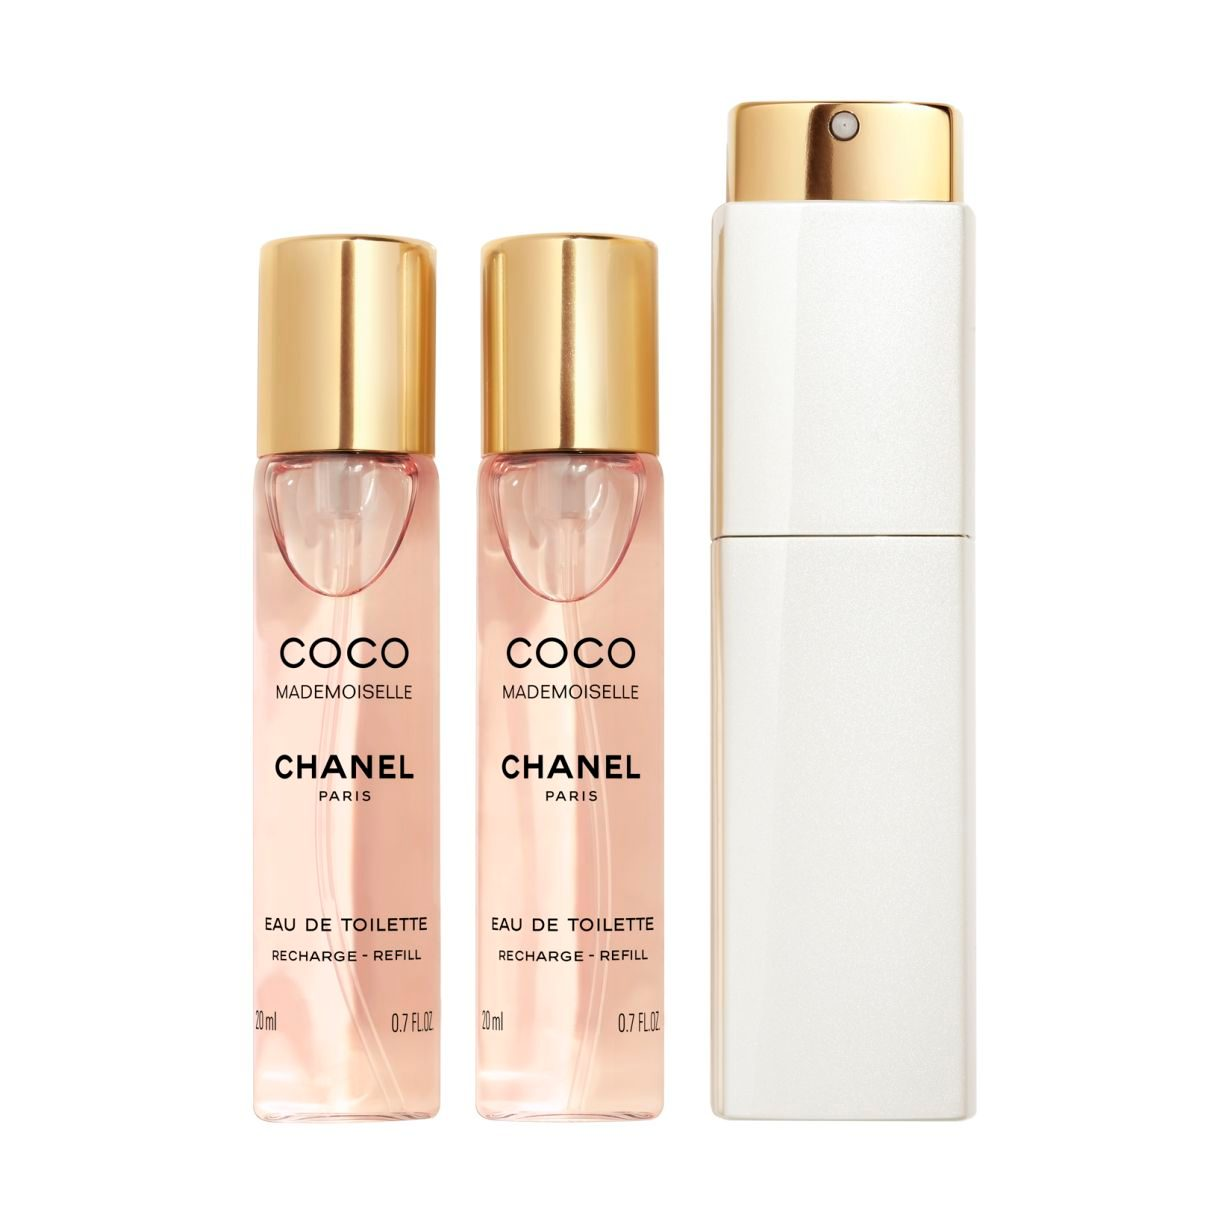 COCO MADEMOISELLE WODA TOALETOWA TWIST AND SPRAY 3 x 20ml